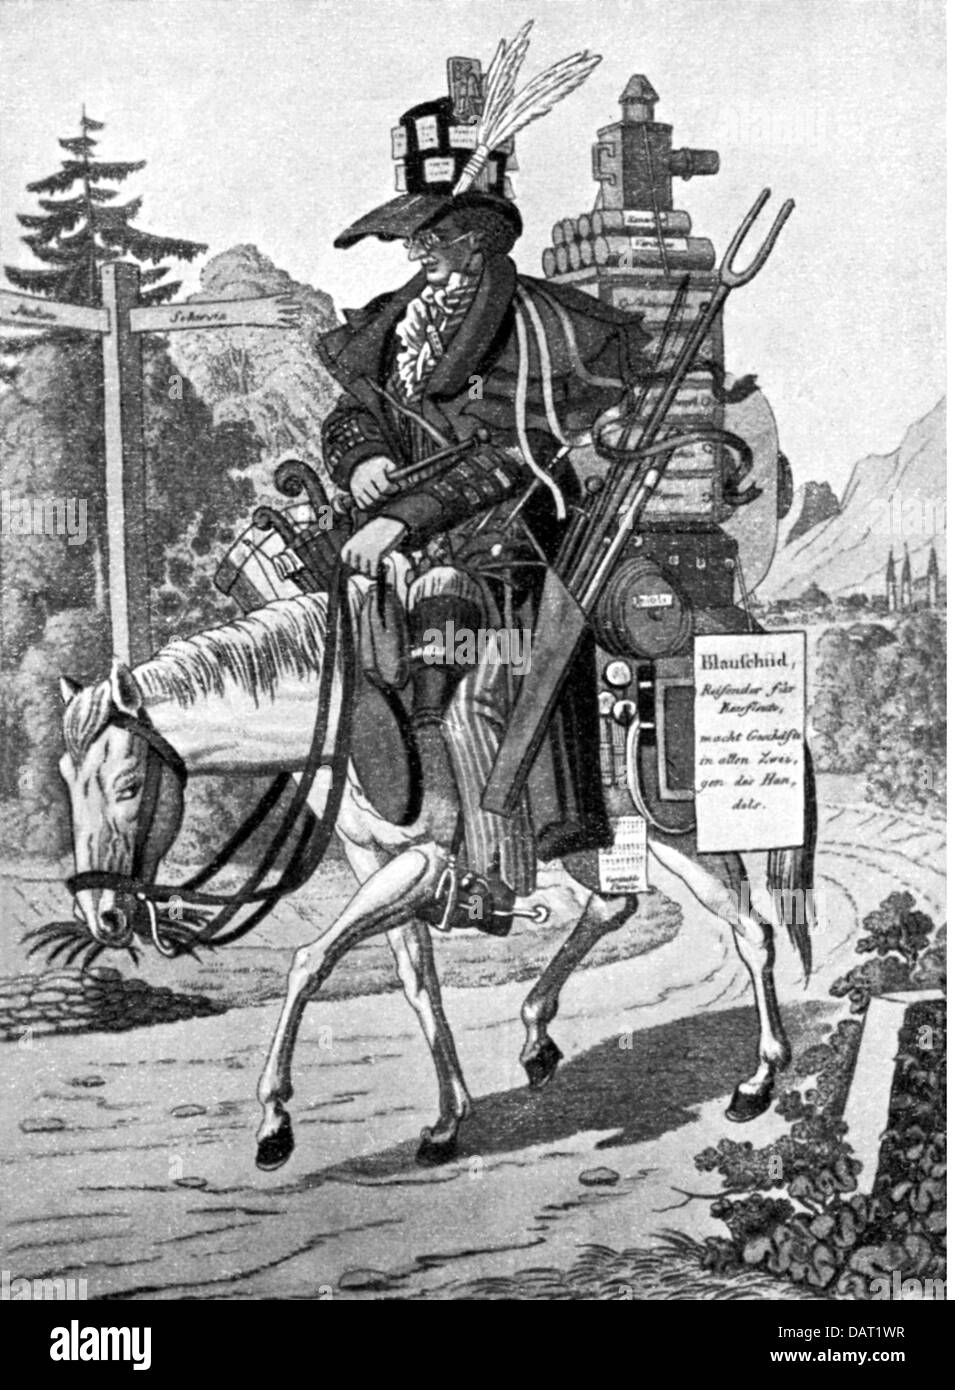 Rothschild, family, 'The sample rider - Blueshield and his wares', lithograph, Austria, 19th century, Additional - Stock Image